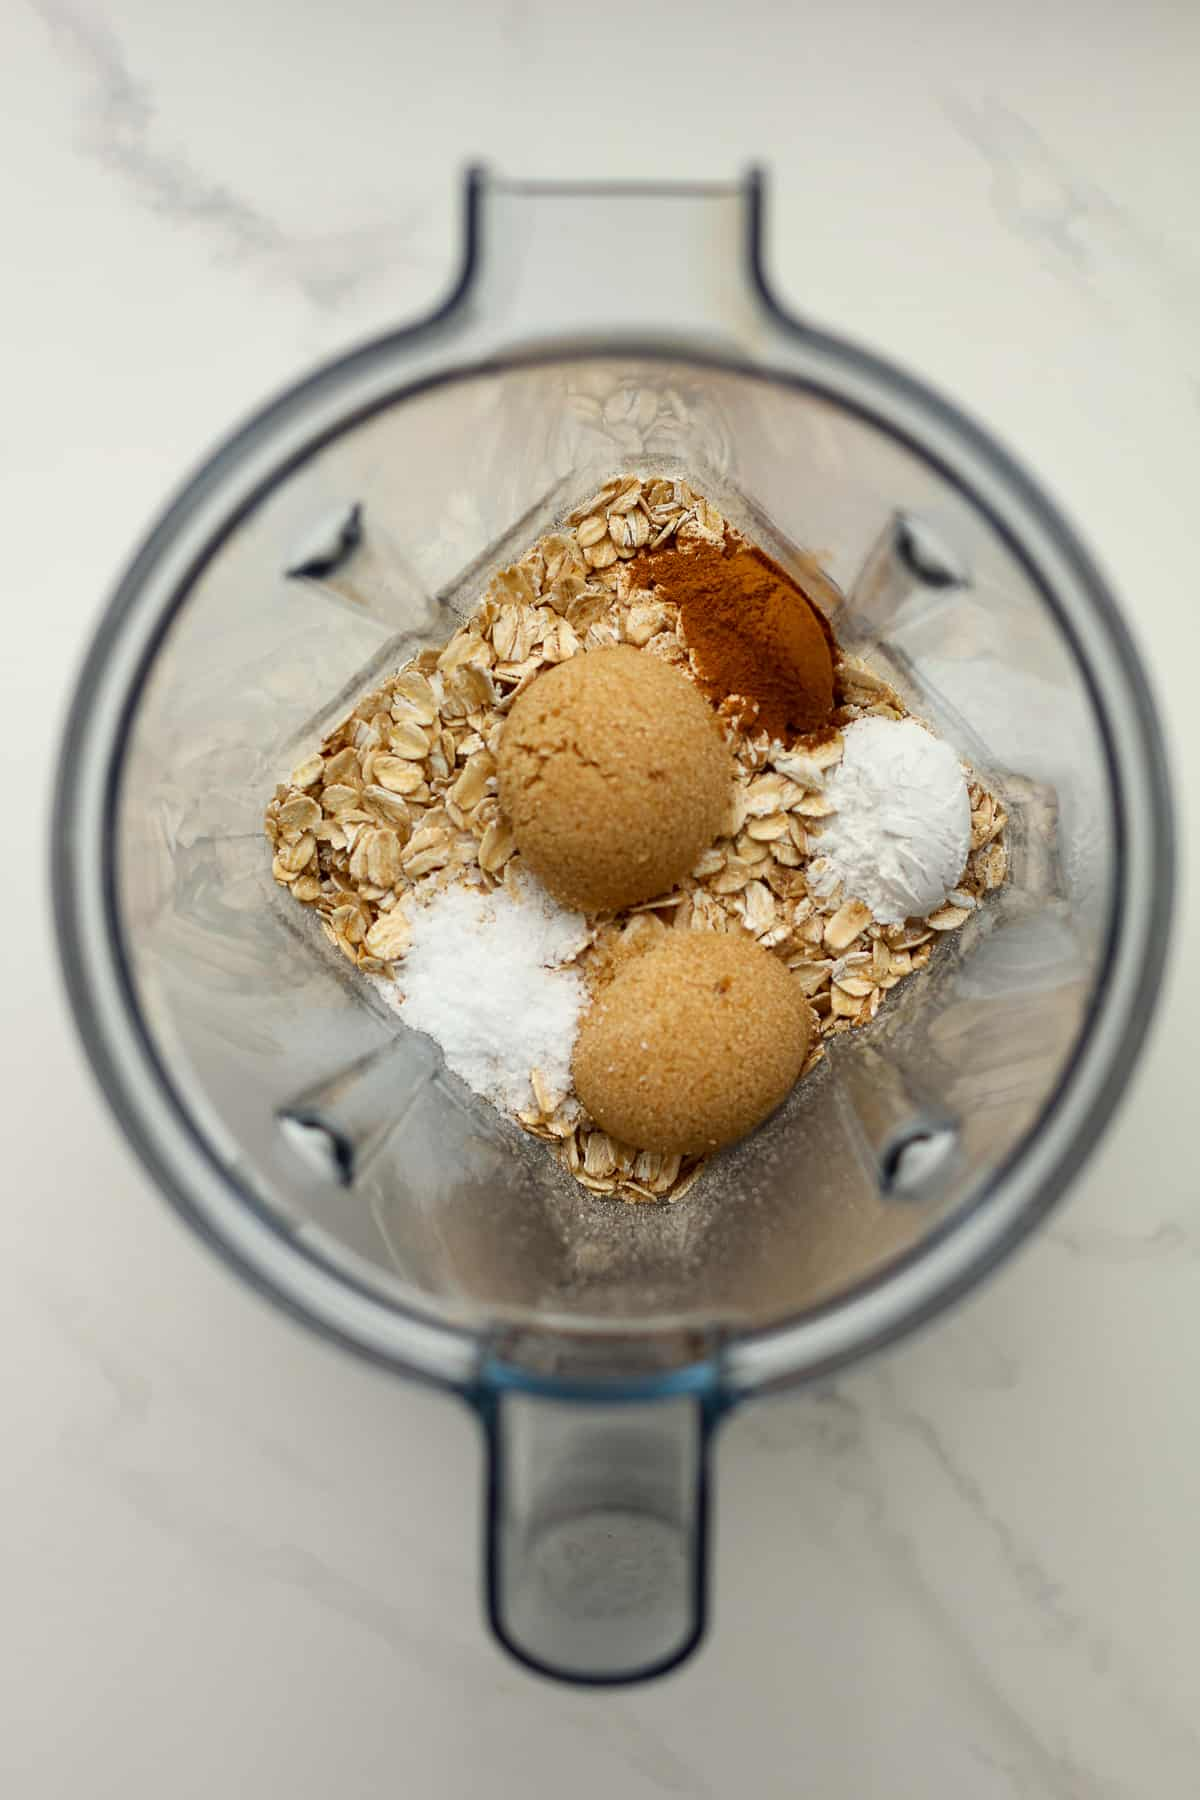 A blender of the dry ingredients.